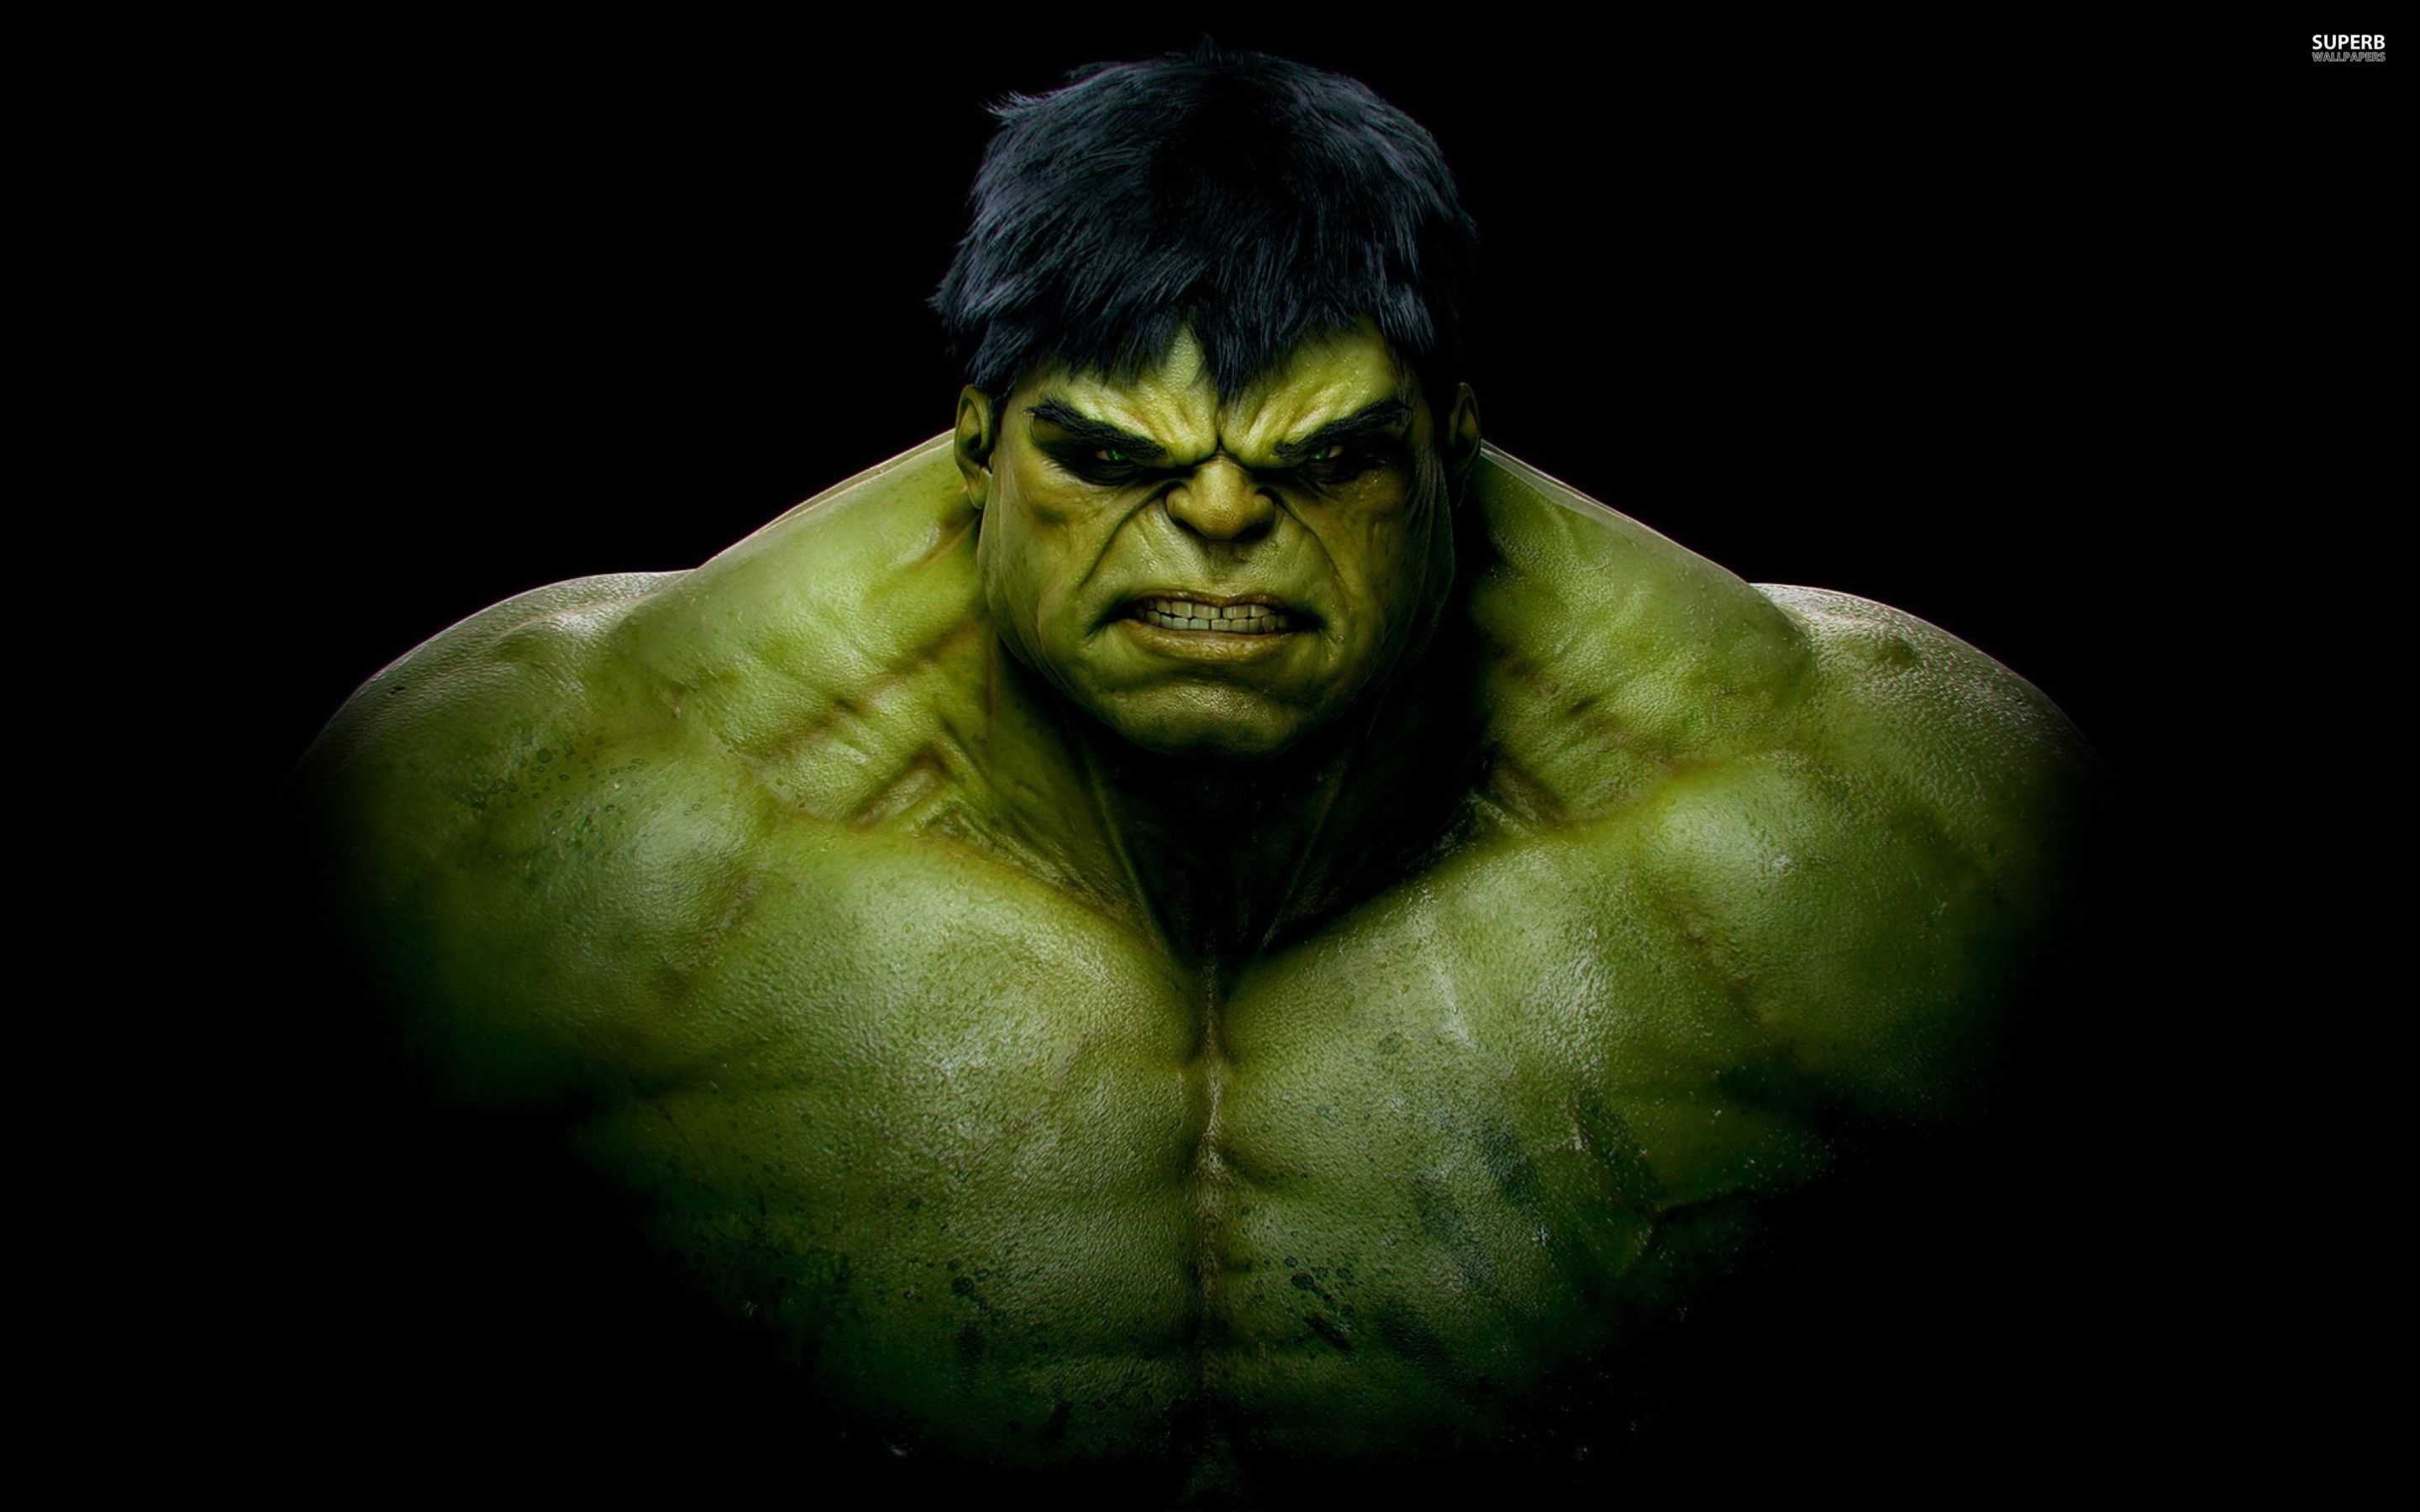 HQ Definition The Incredible Hulk Background Images for 2880x1800